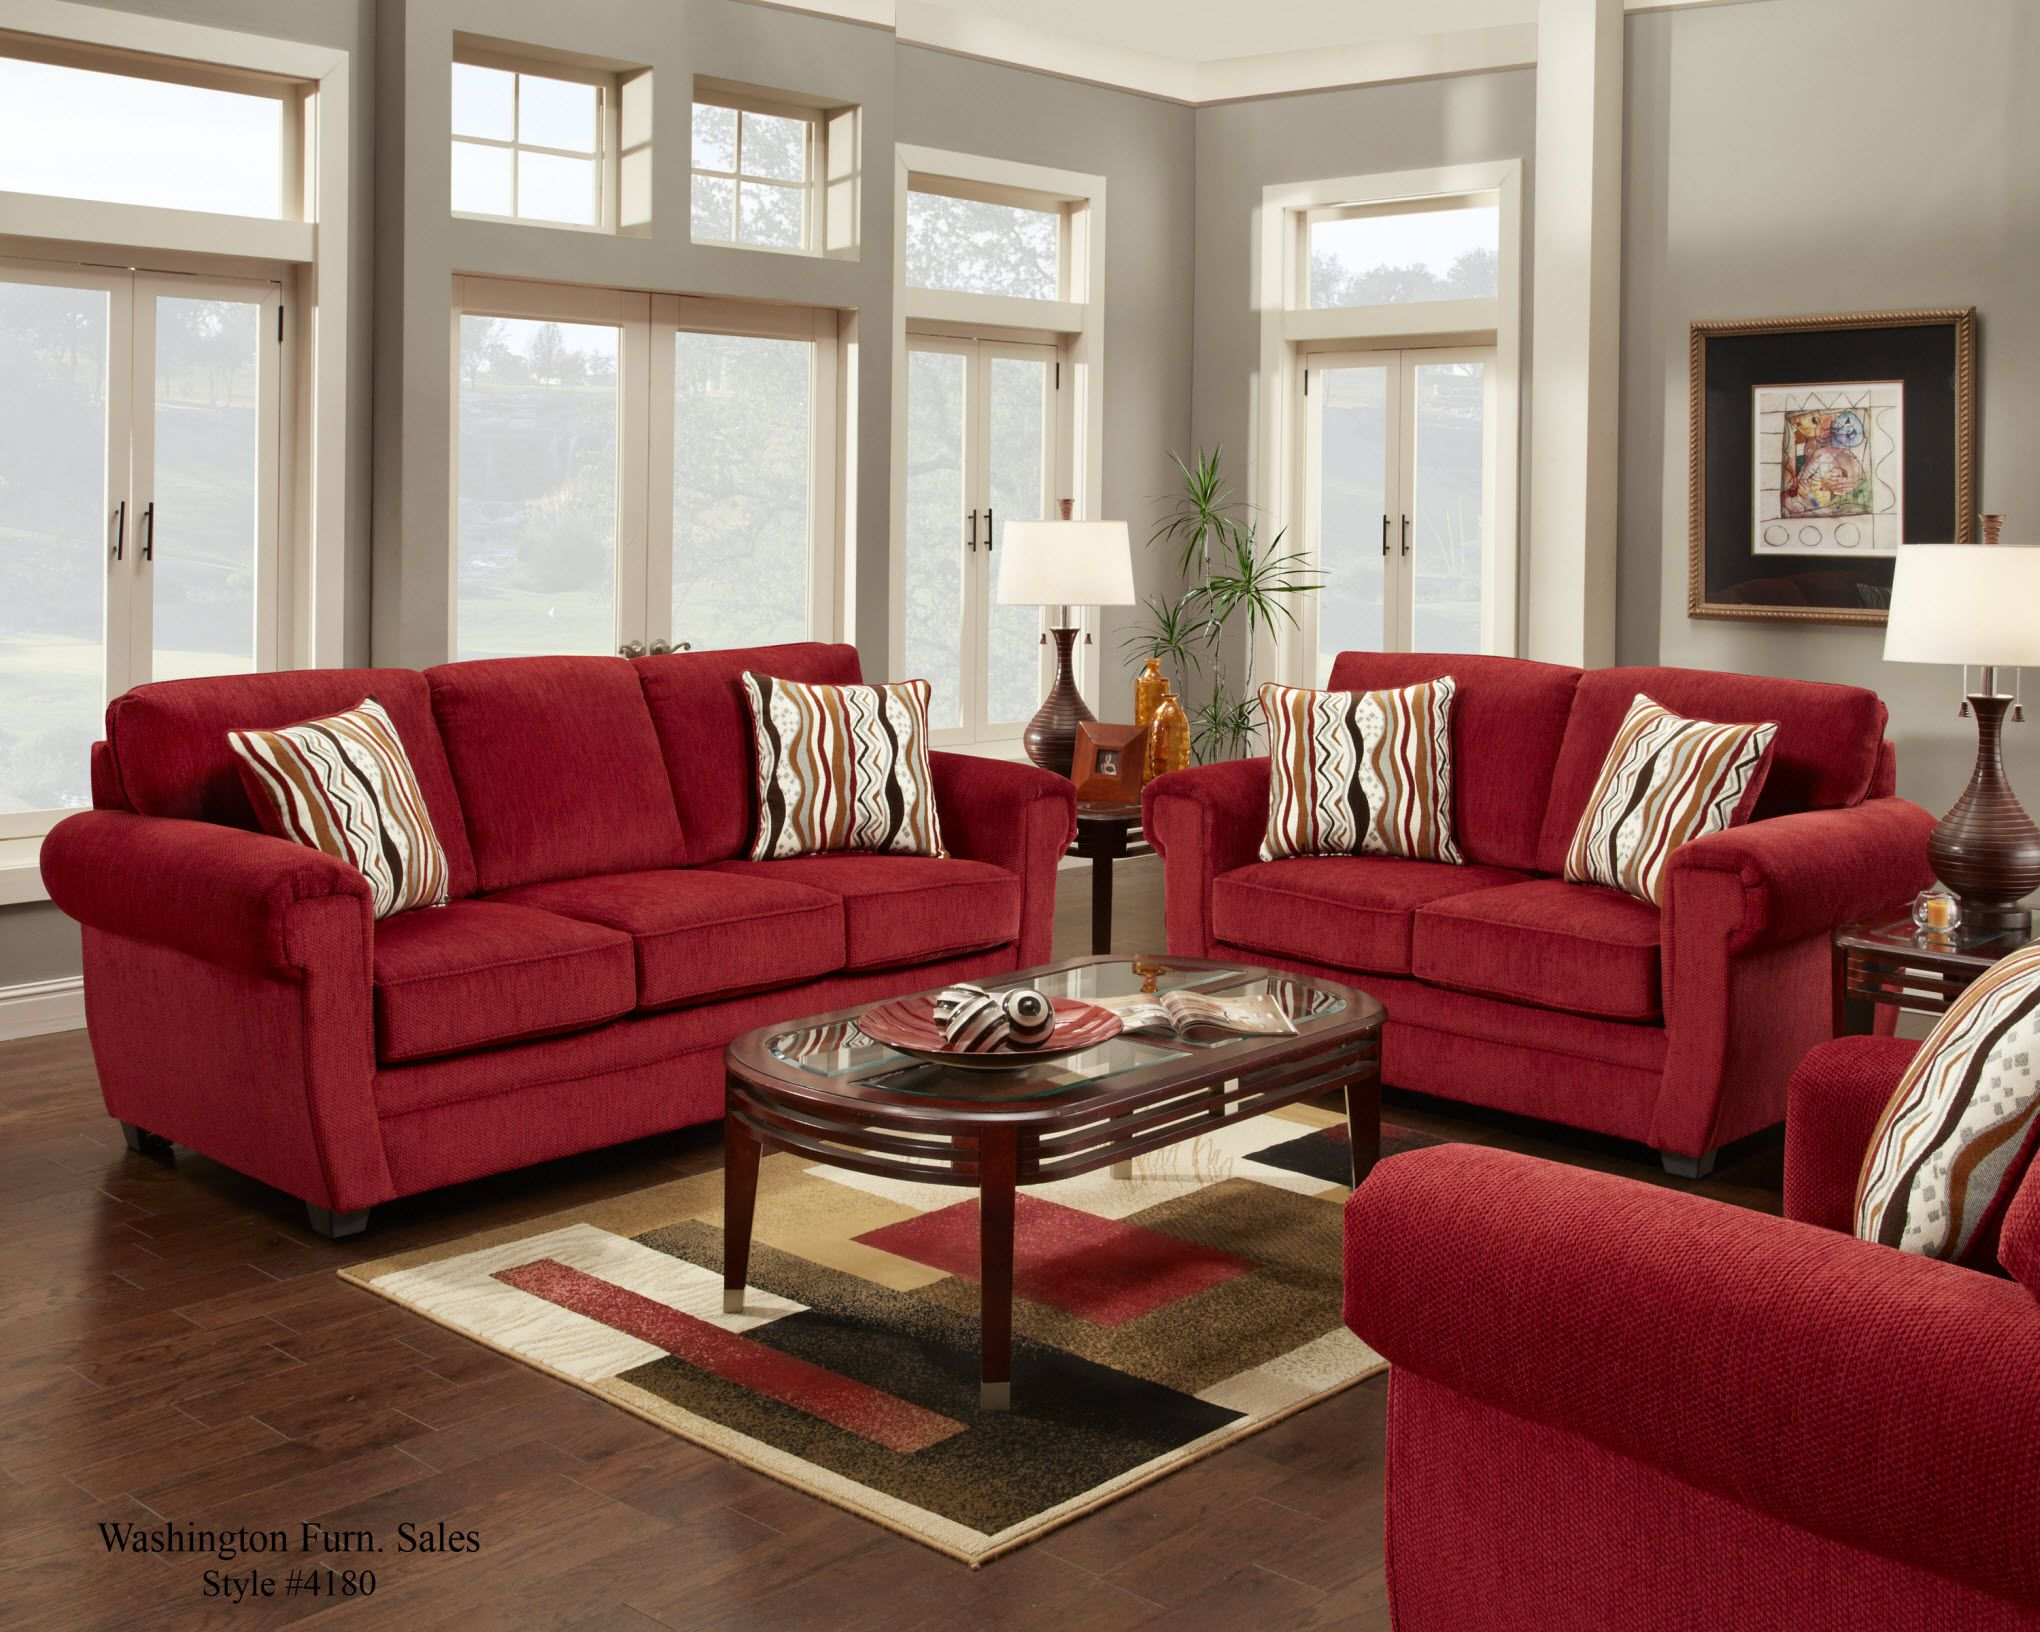 Red Living Room: 4180 Washington Samson Red Sofa And Loveseat @ Www